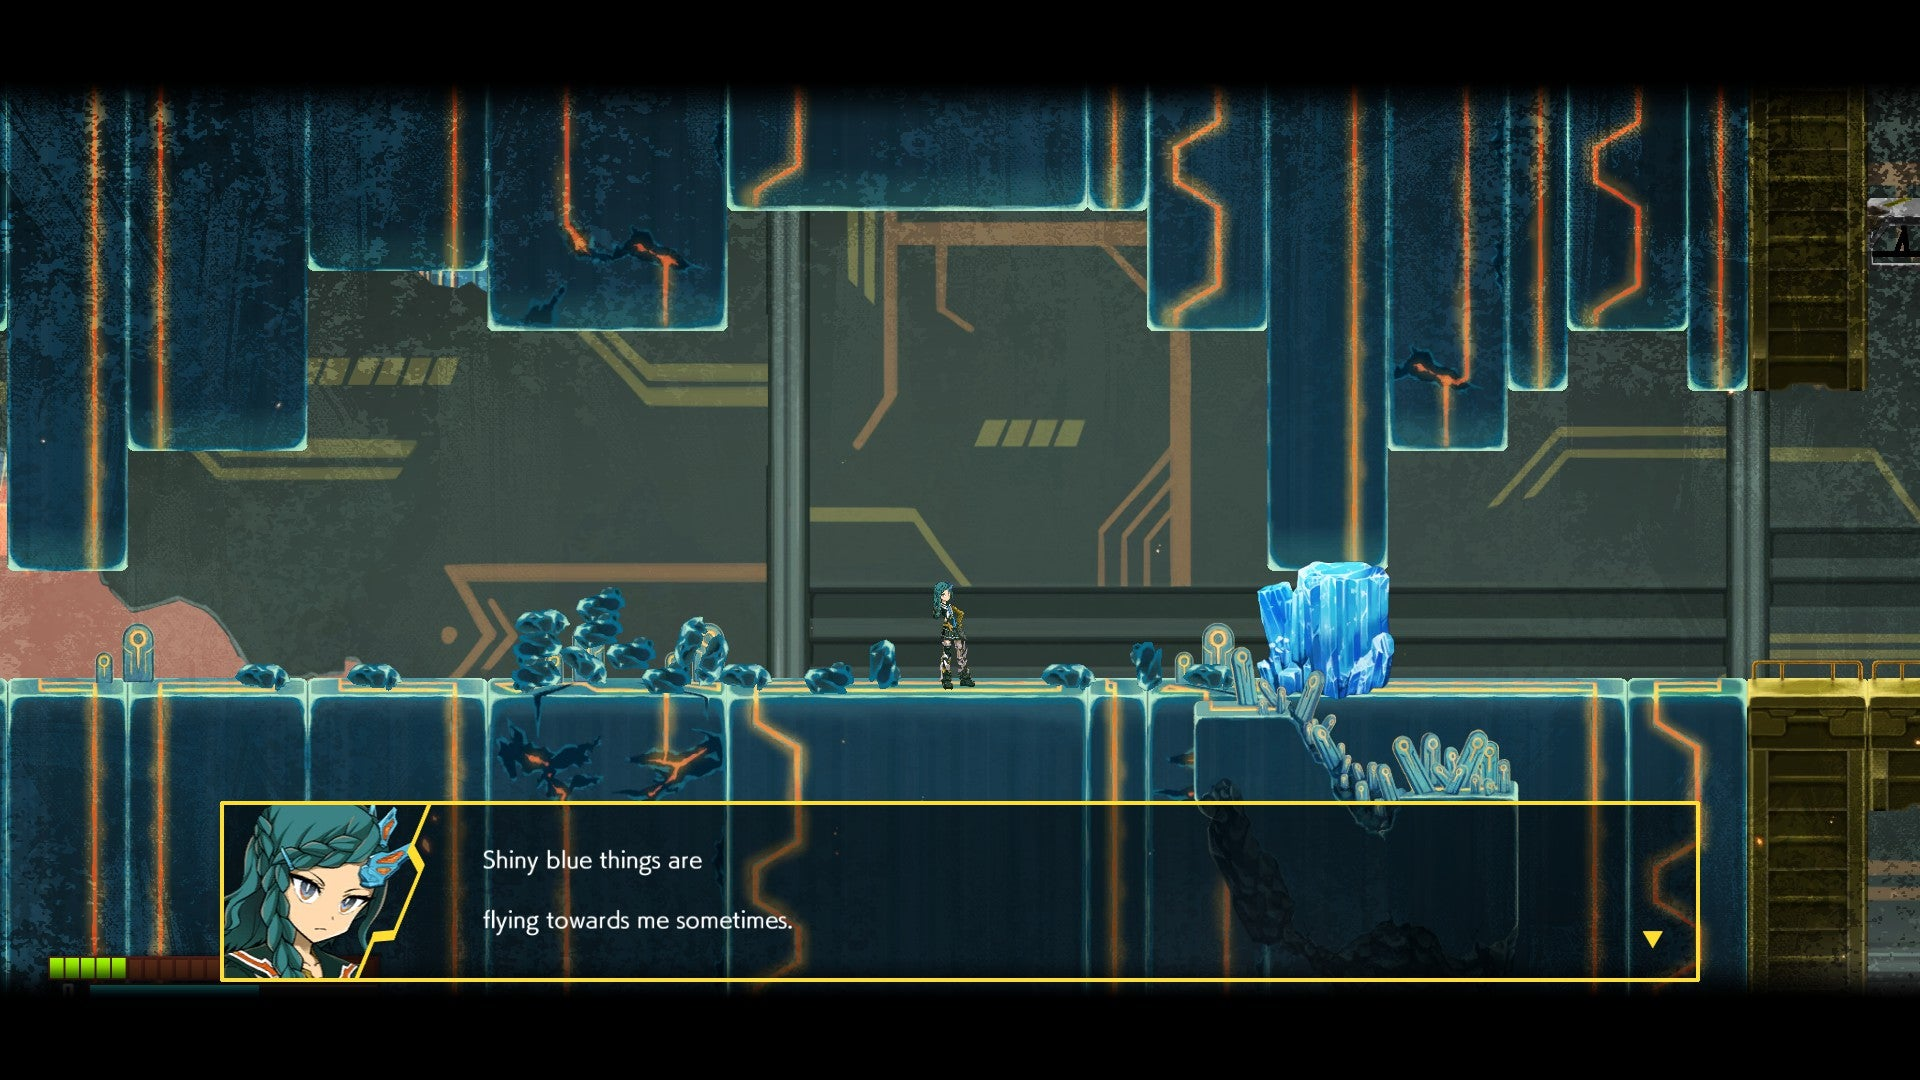 Game Freak's Latest Non-PokemonJoint Is This Odd Early Access Puzzle Platformer